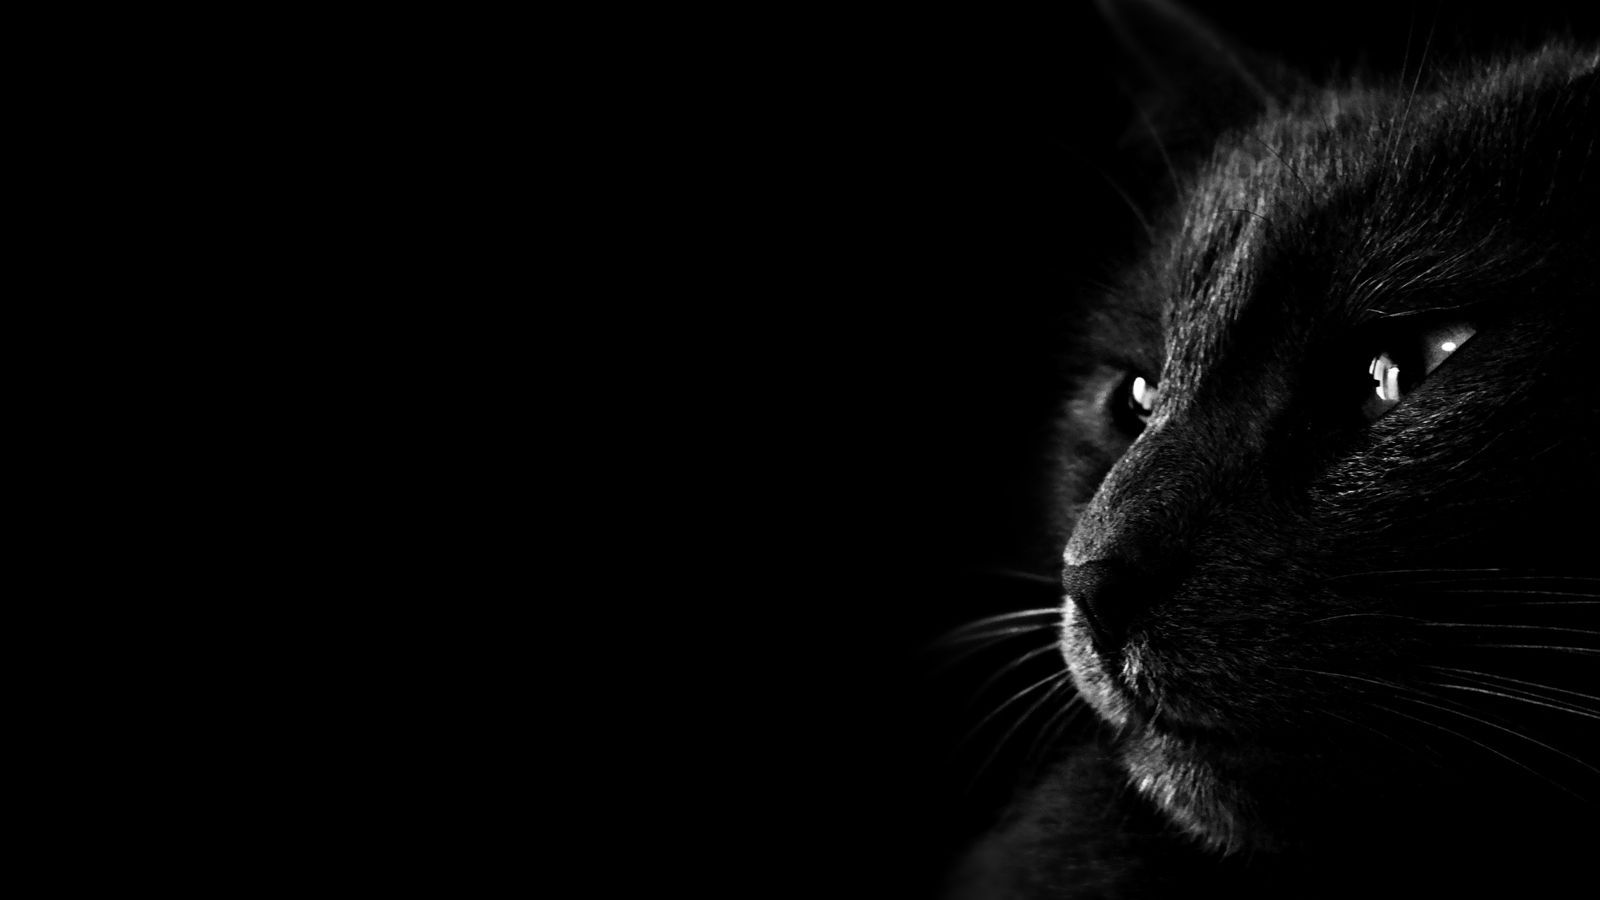 Cat Dark Wallpaper | Wallpaper | Cat wallpaper, Black wallpaper, Dark wallpaper